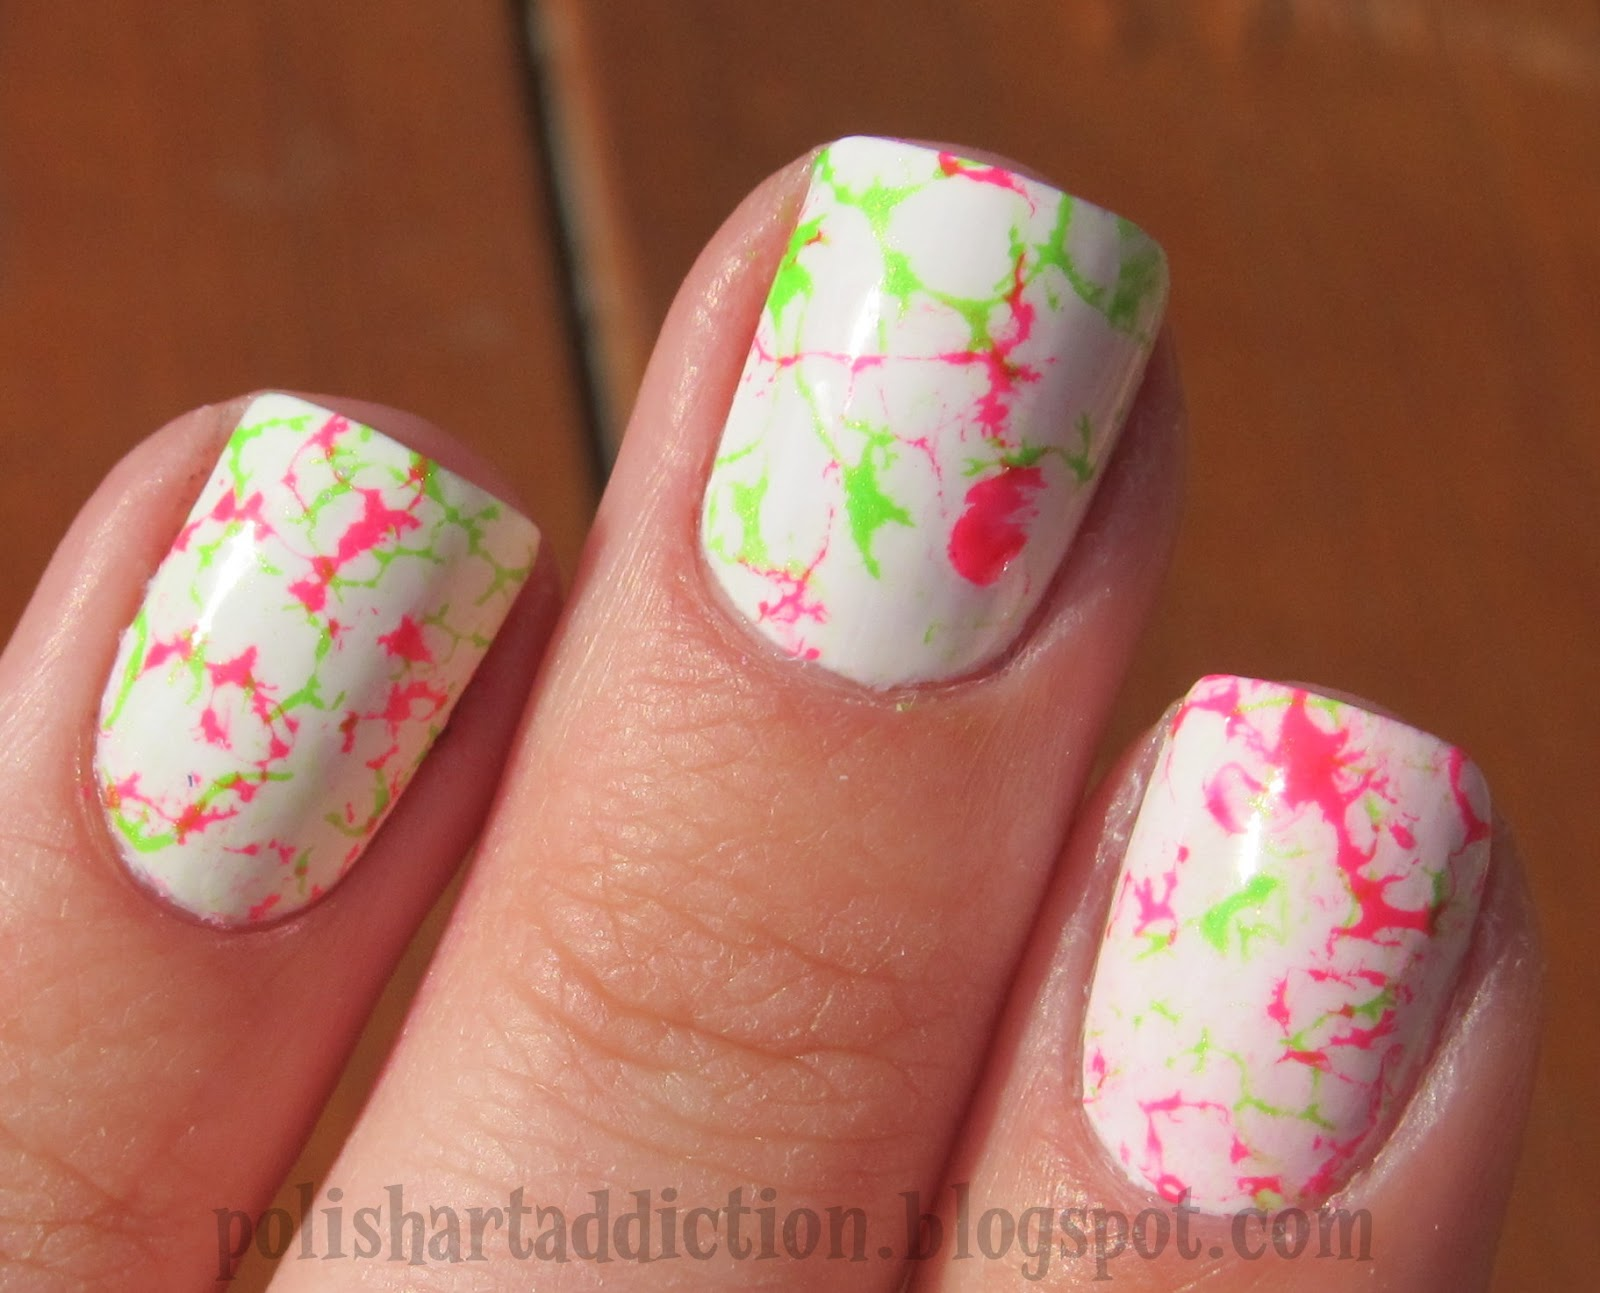 Neon splatter/shredded/hair spray marble